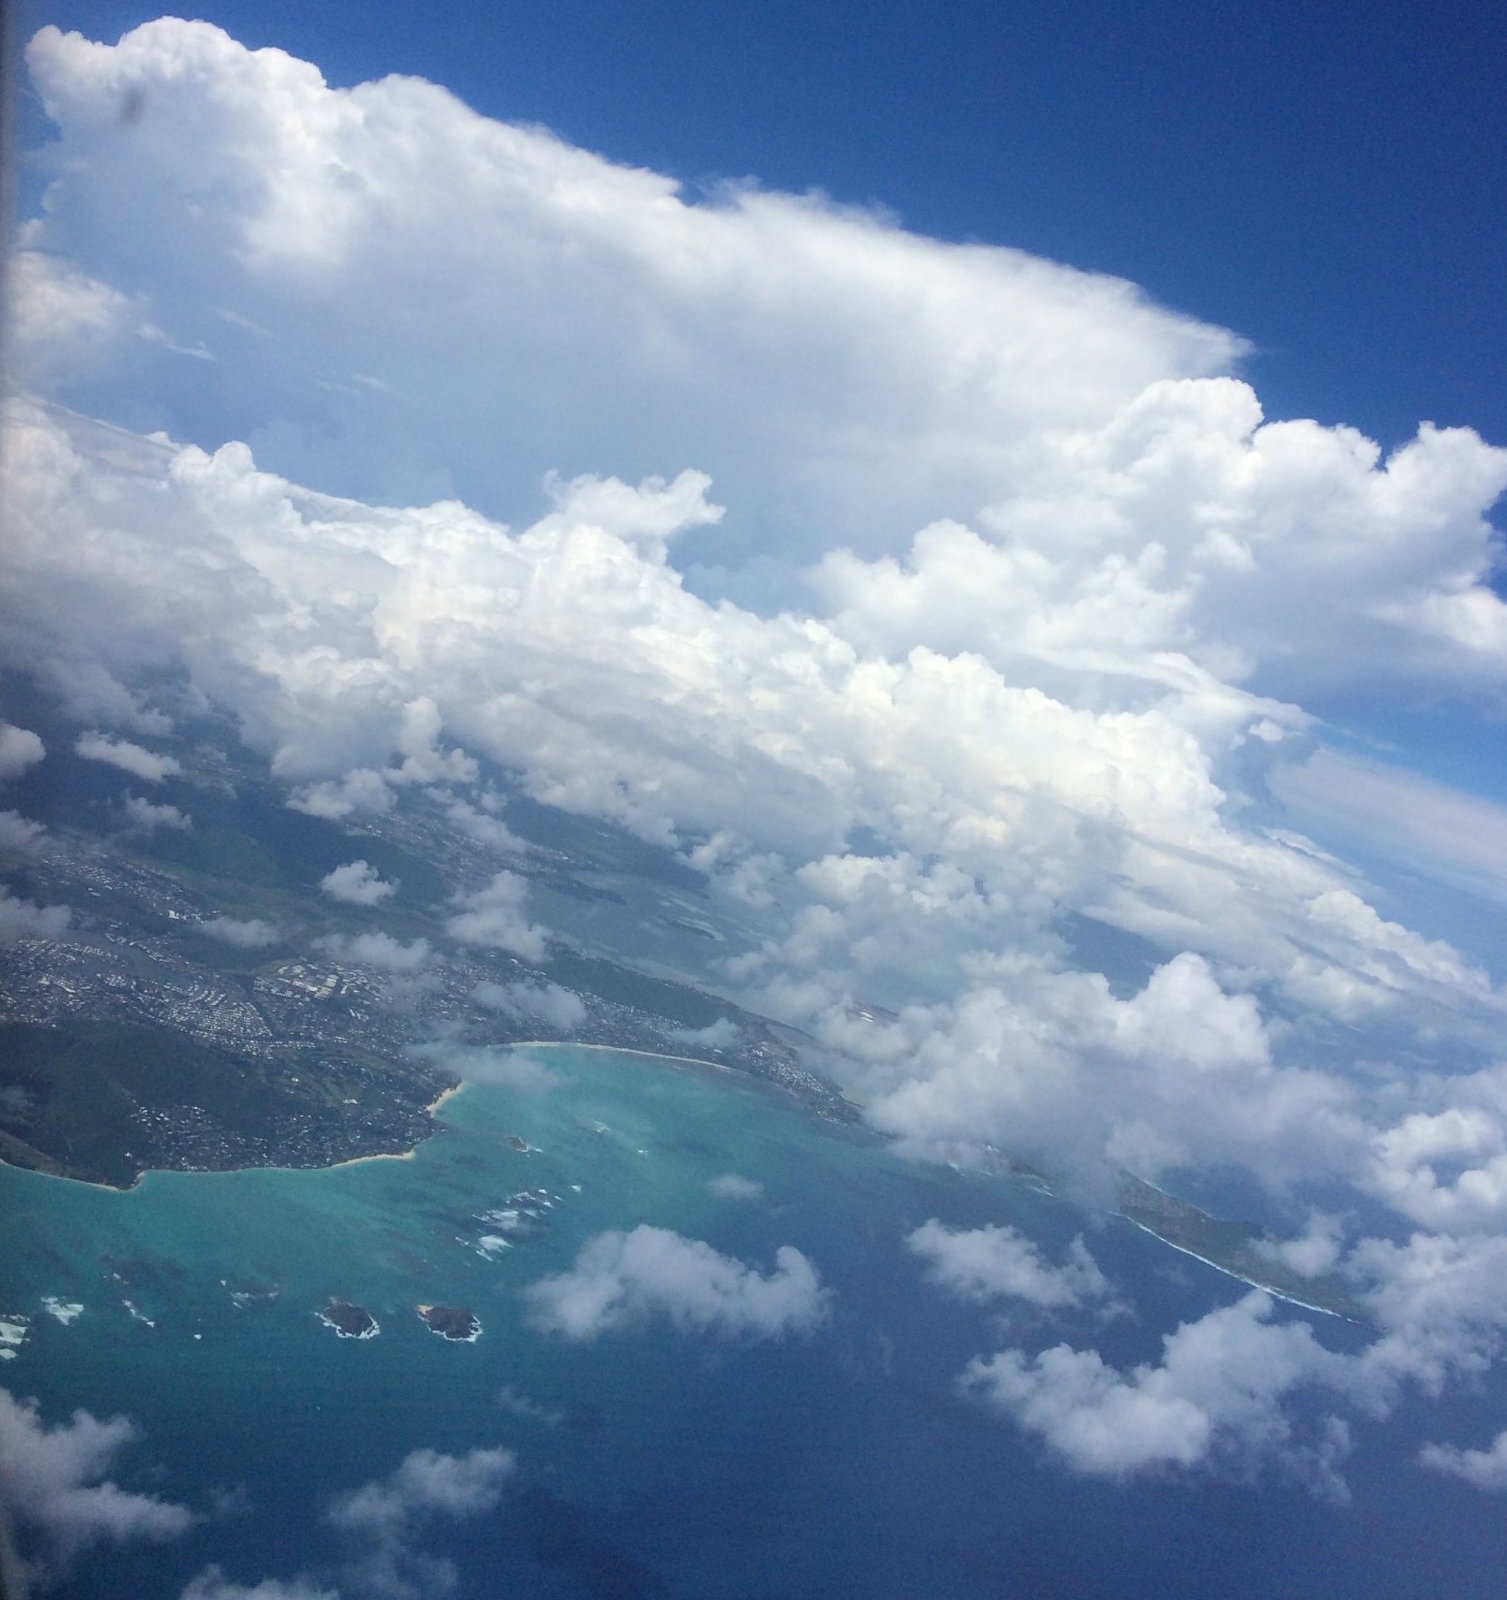 Image of the Pacific Ocean from a plane